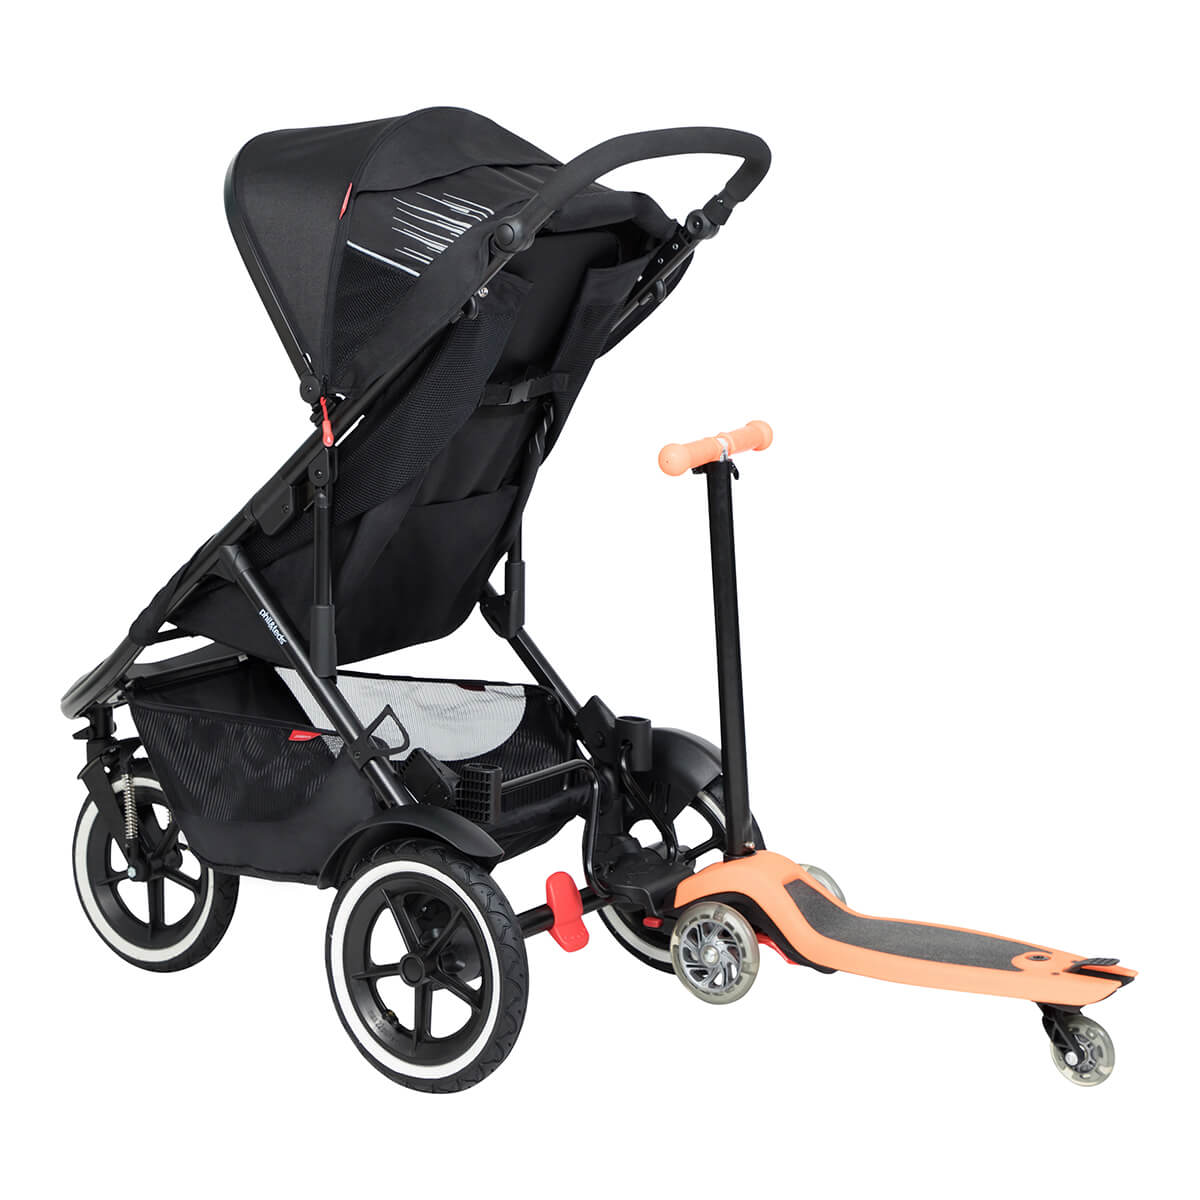 https://cdn.accentuate.io/4509902471245/19466204315842/philteds-sport-buggy-with-freerider-stroller-board-in-rear-v1626485432092.jpg?1200x1200